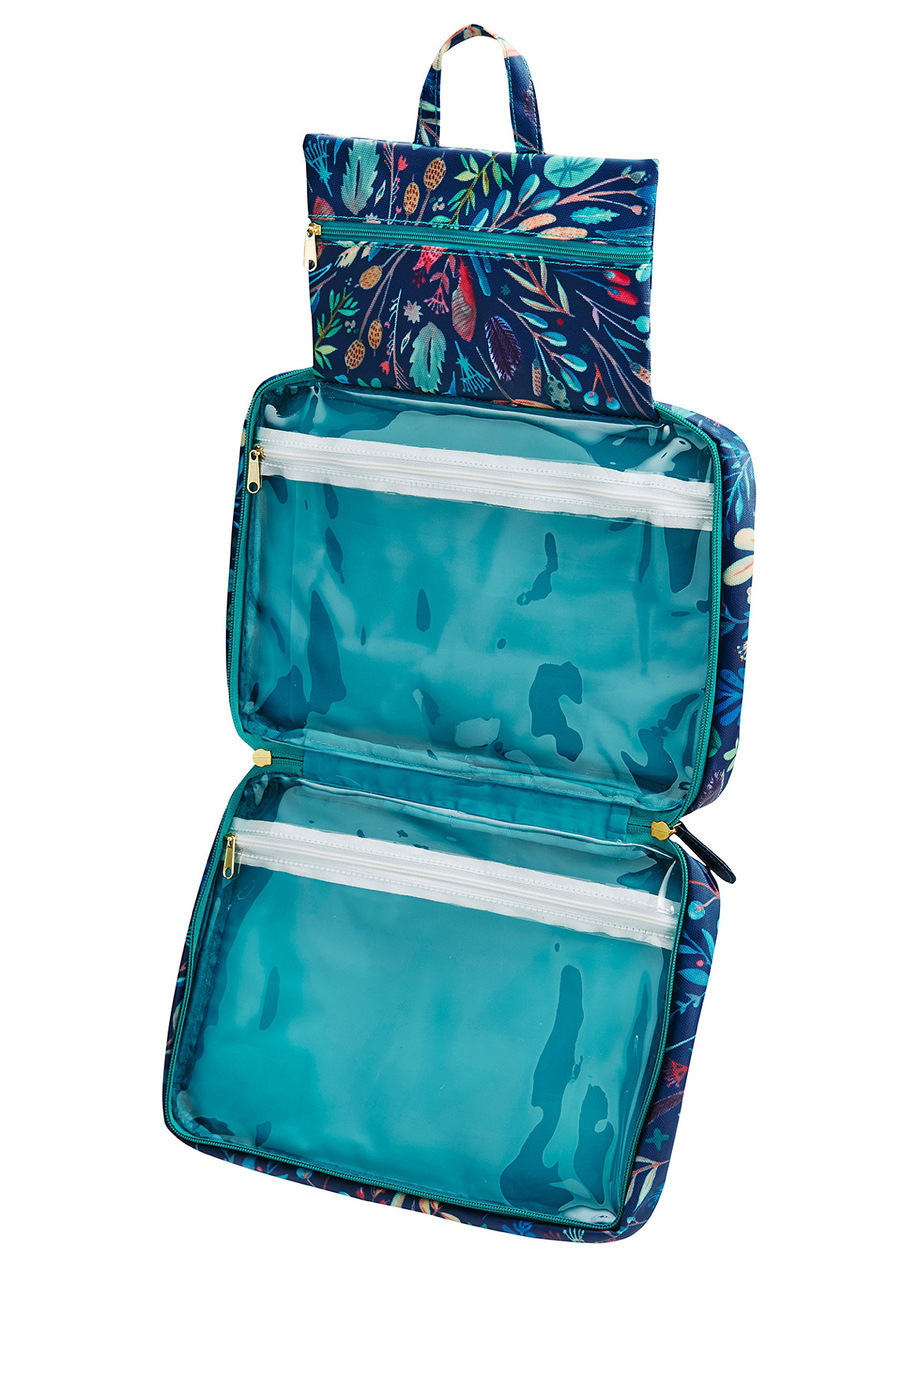 new mozi large toiletry bag odette night